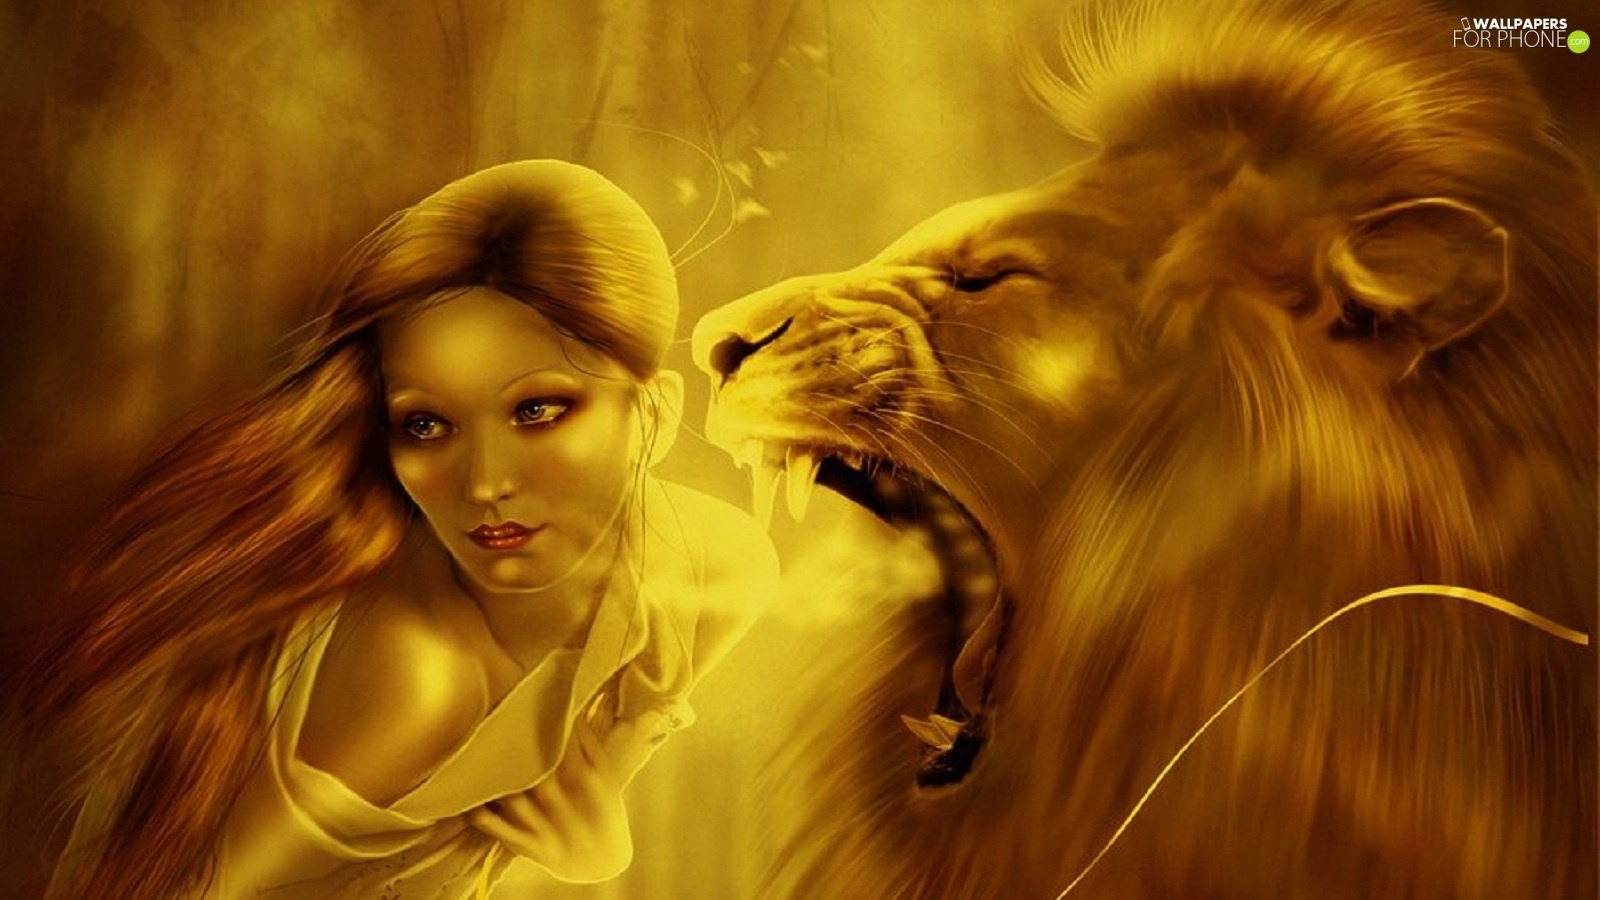 Roaring Lion Girl For Phone Wallpapers 1600x900